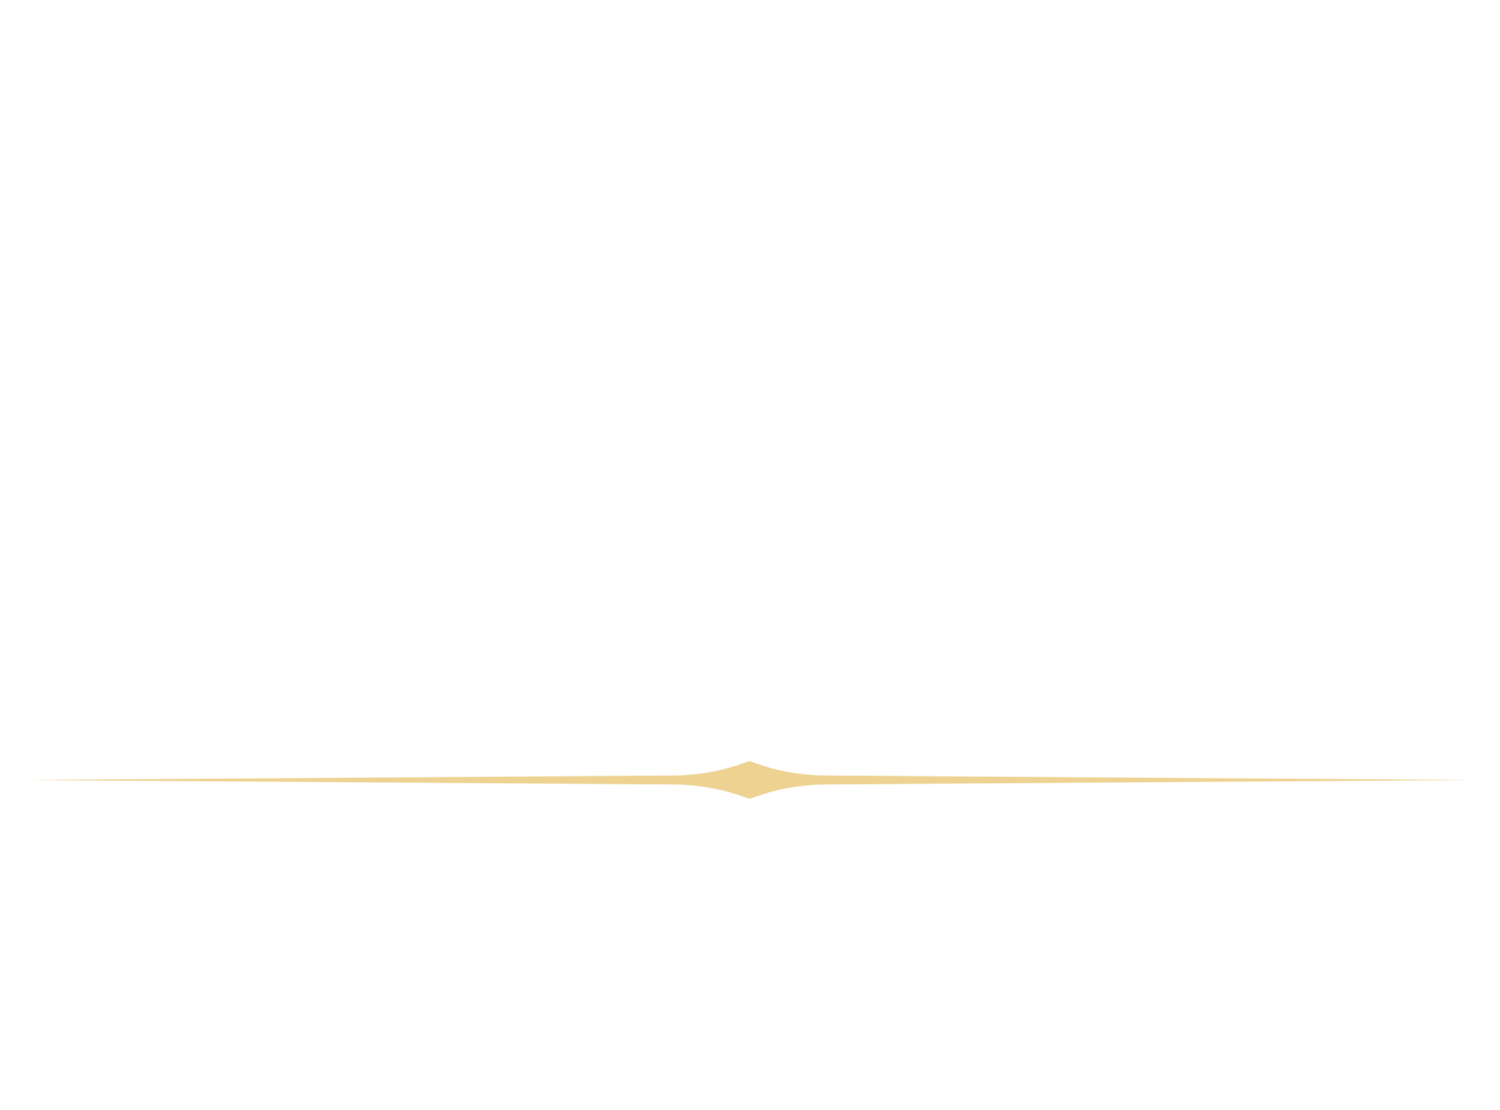 TWO RIVERS INSTITUTE